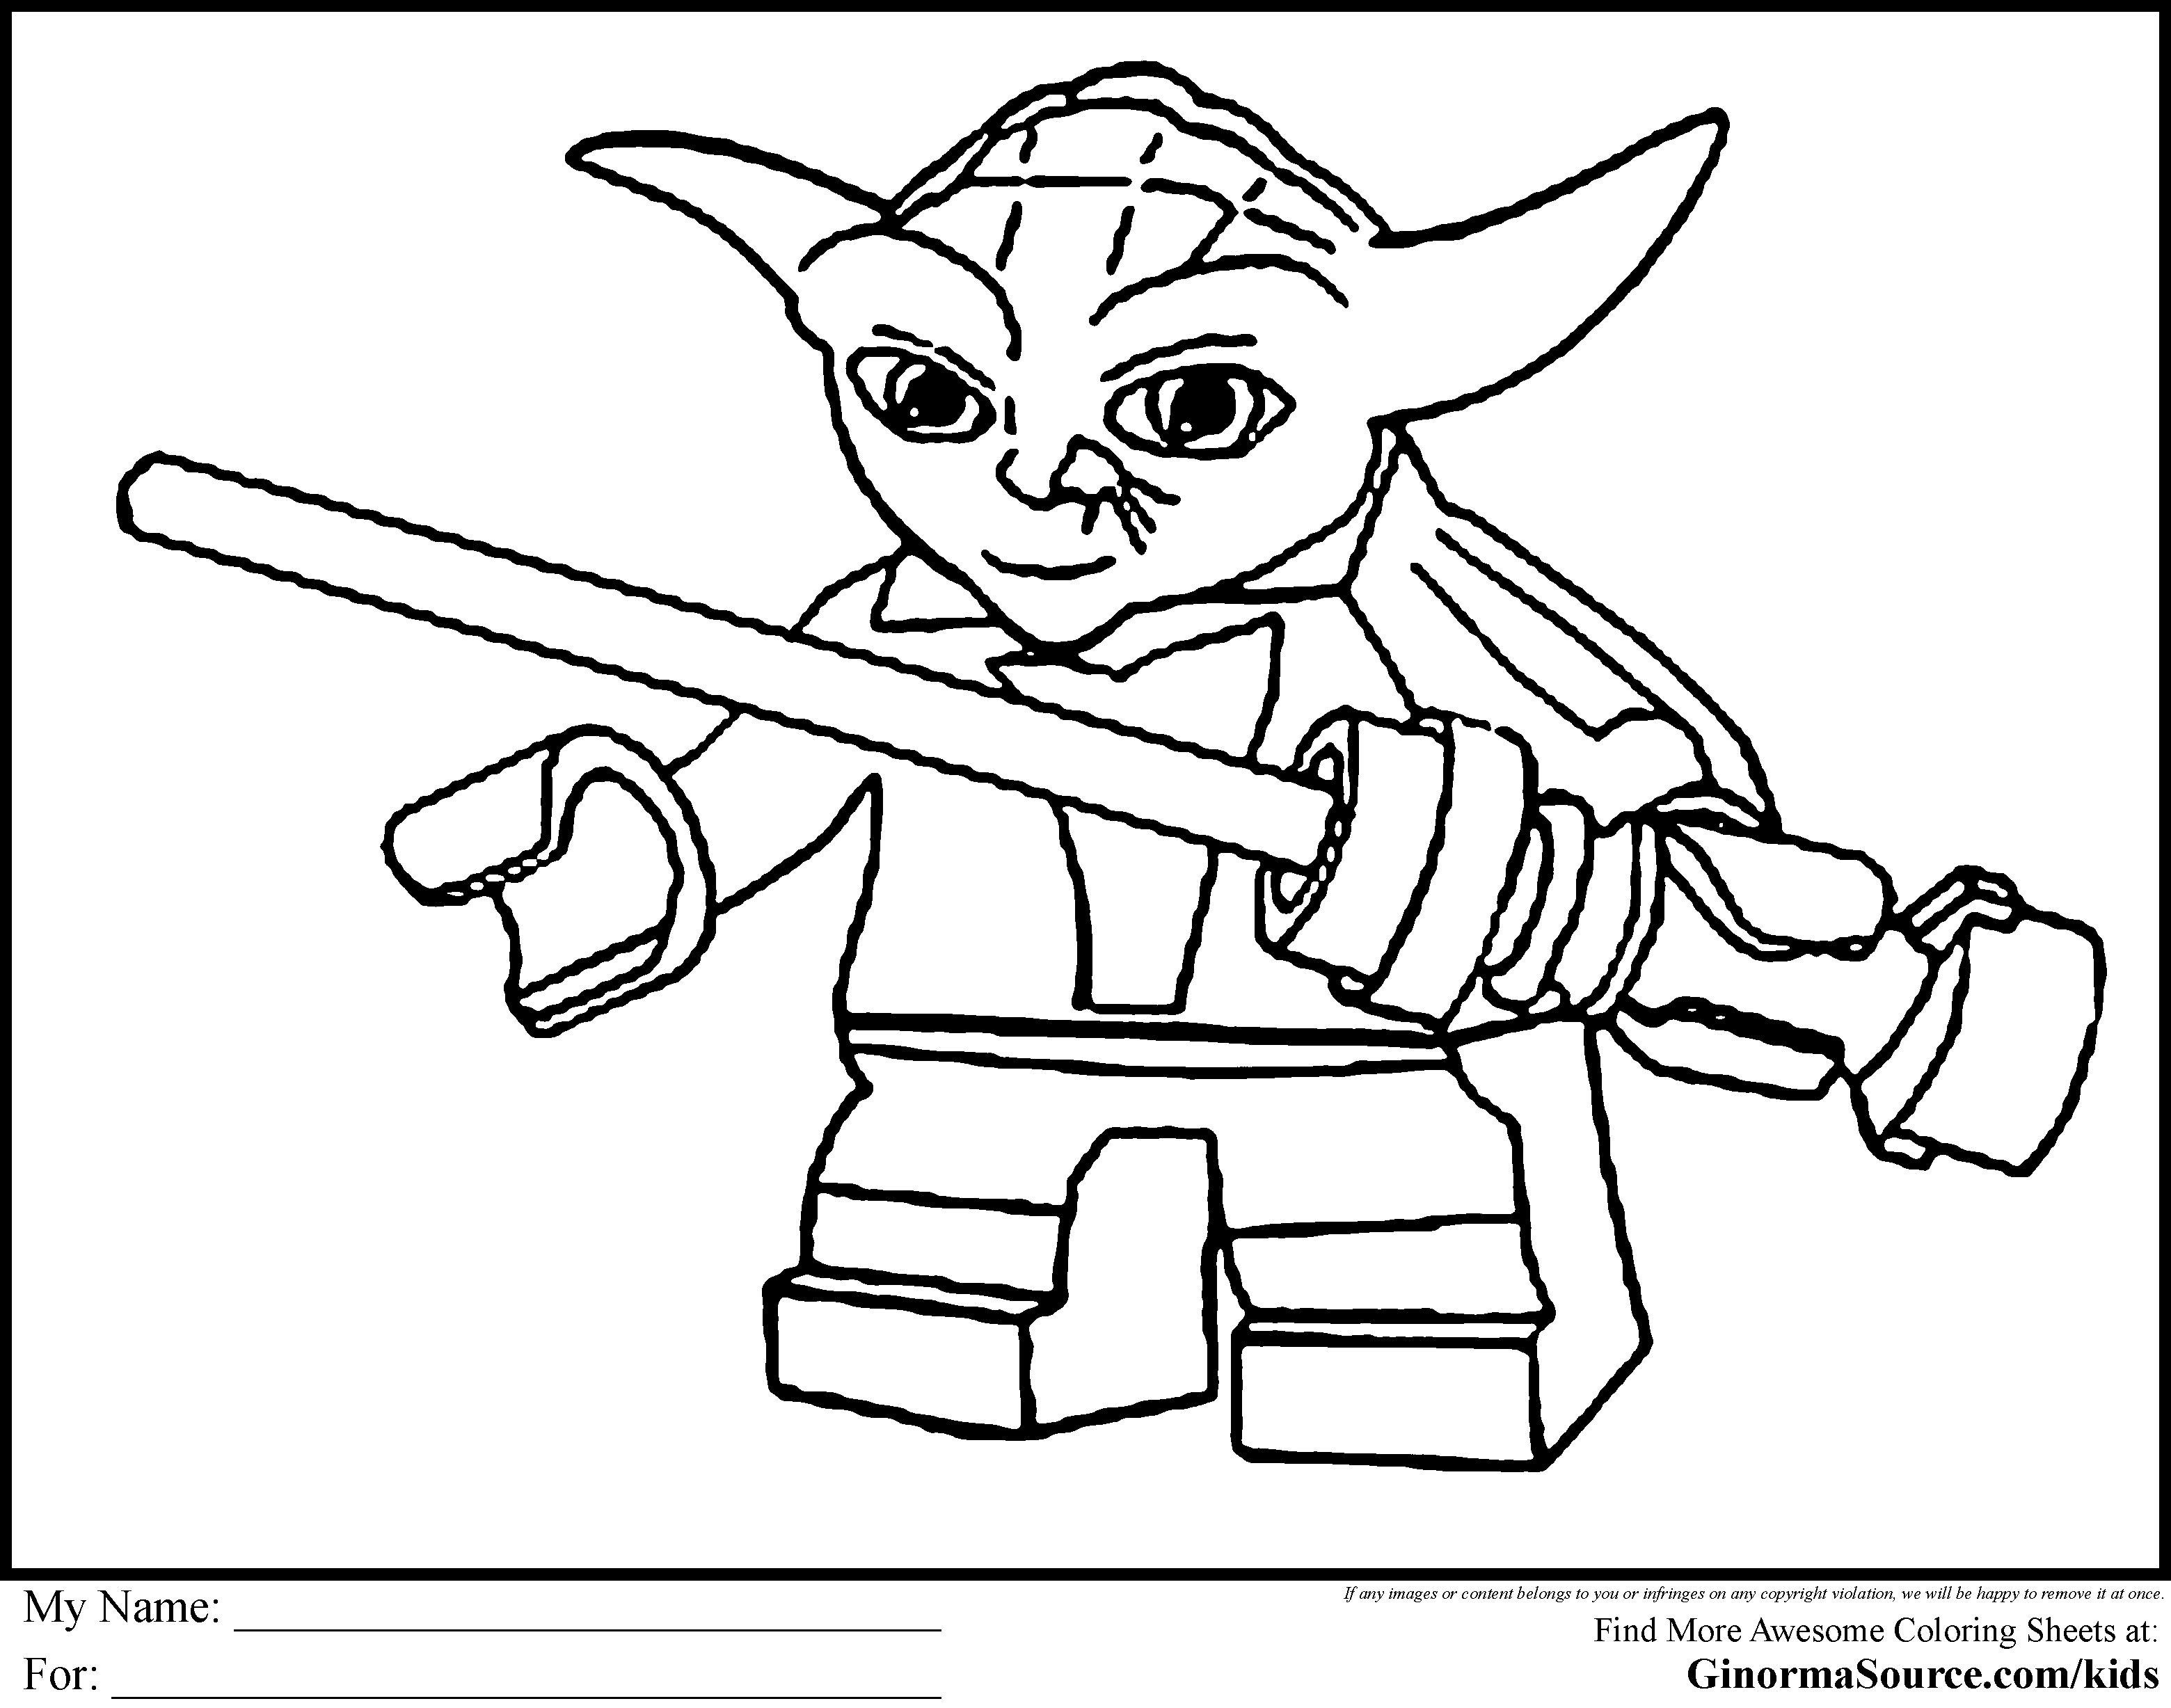 starwars colouring star wars printable coloring pages hubpages colouring starwars